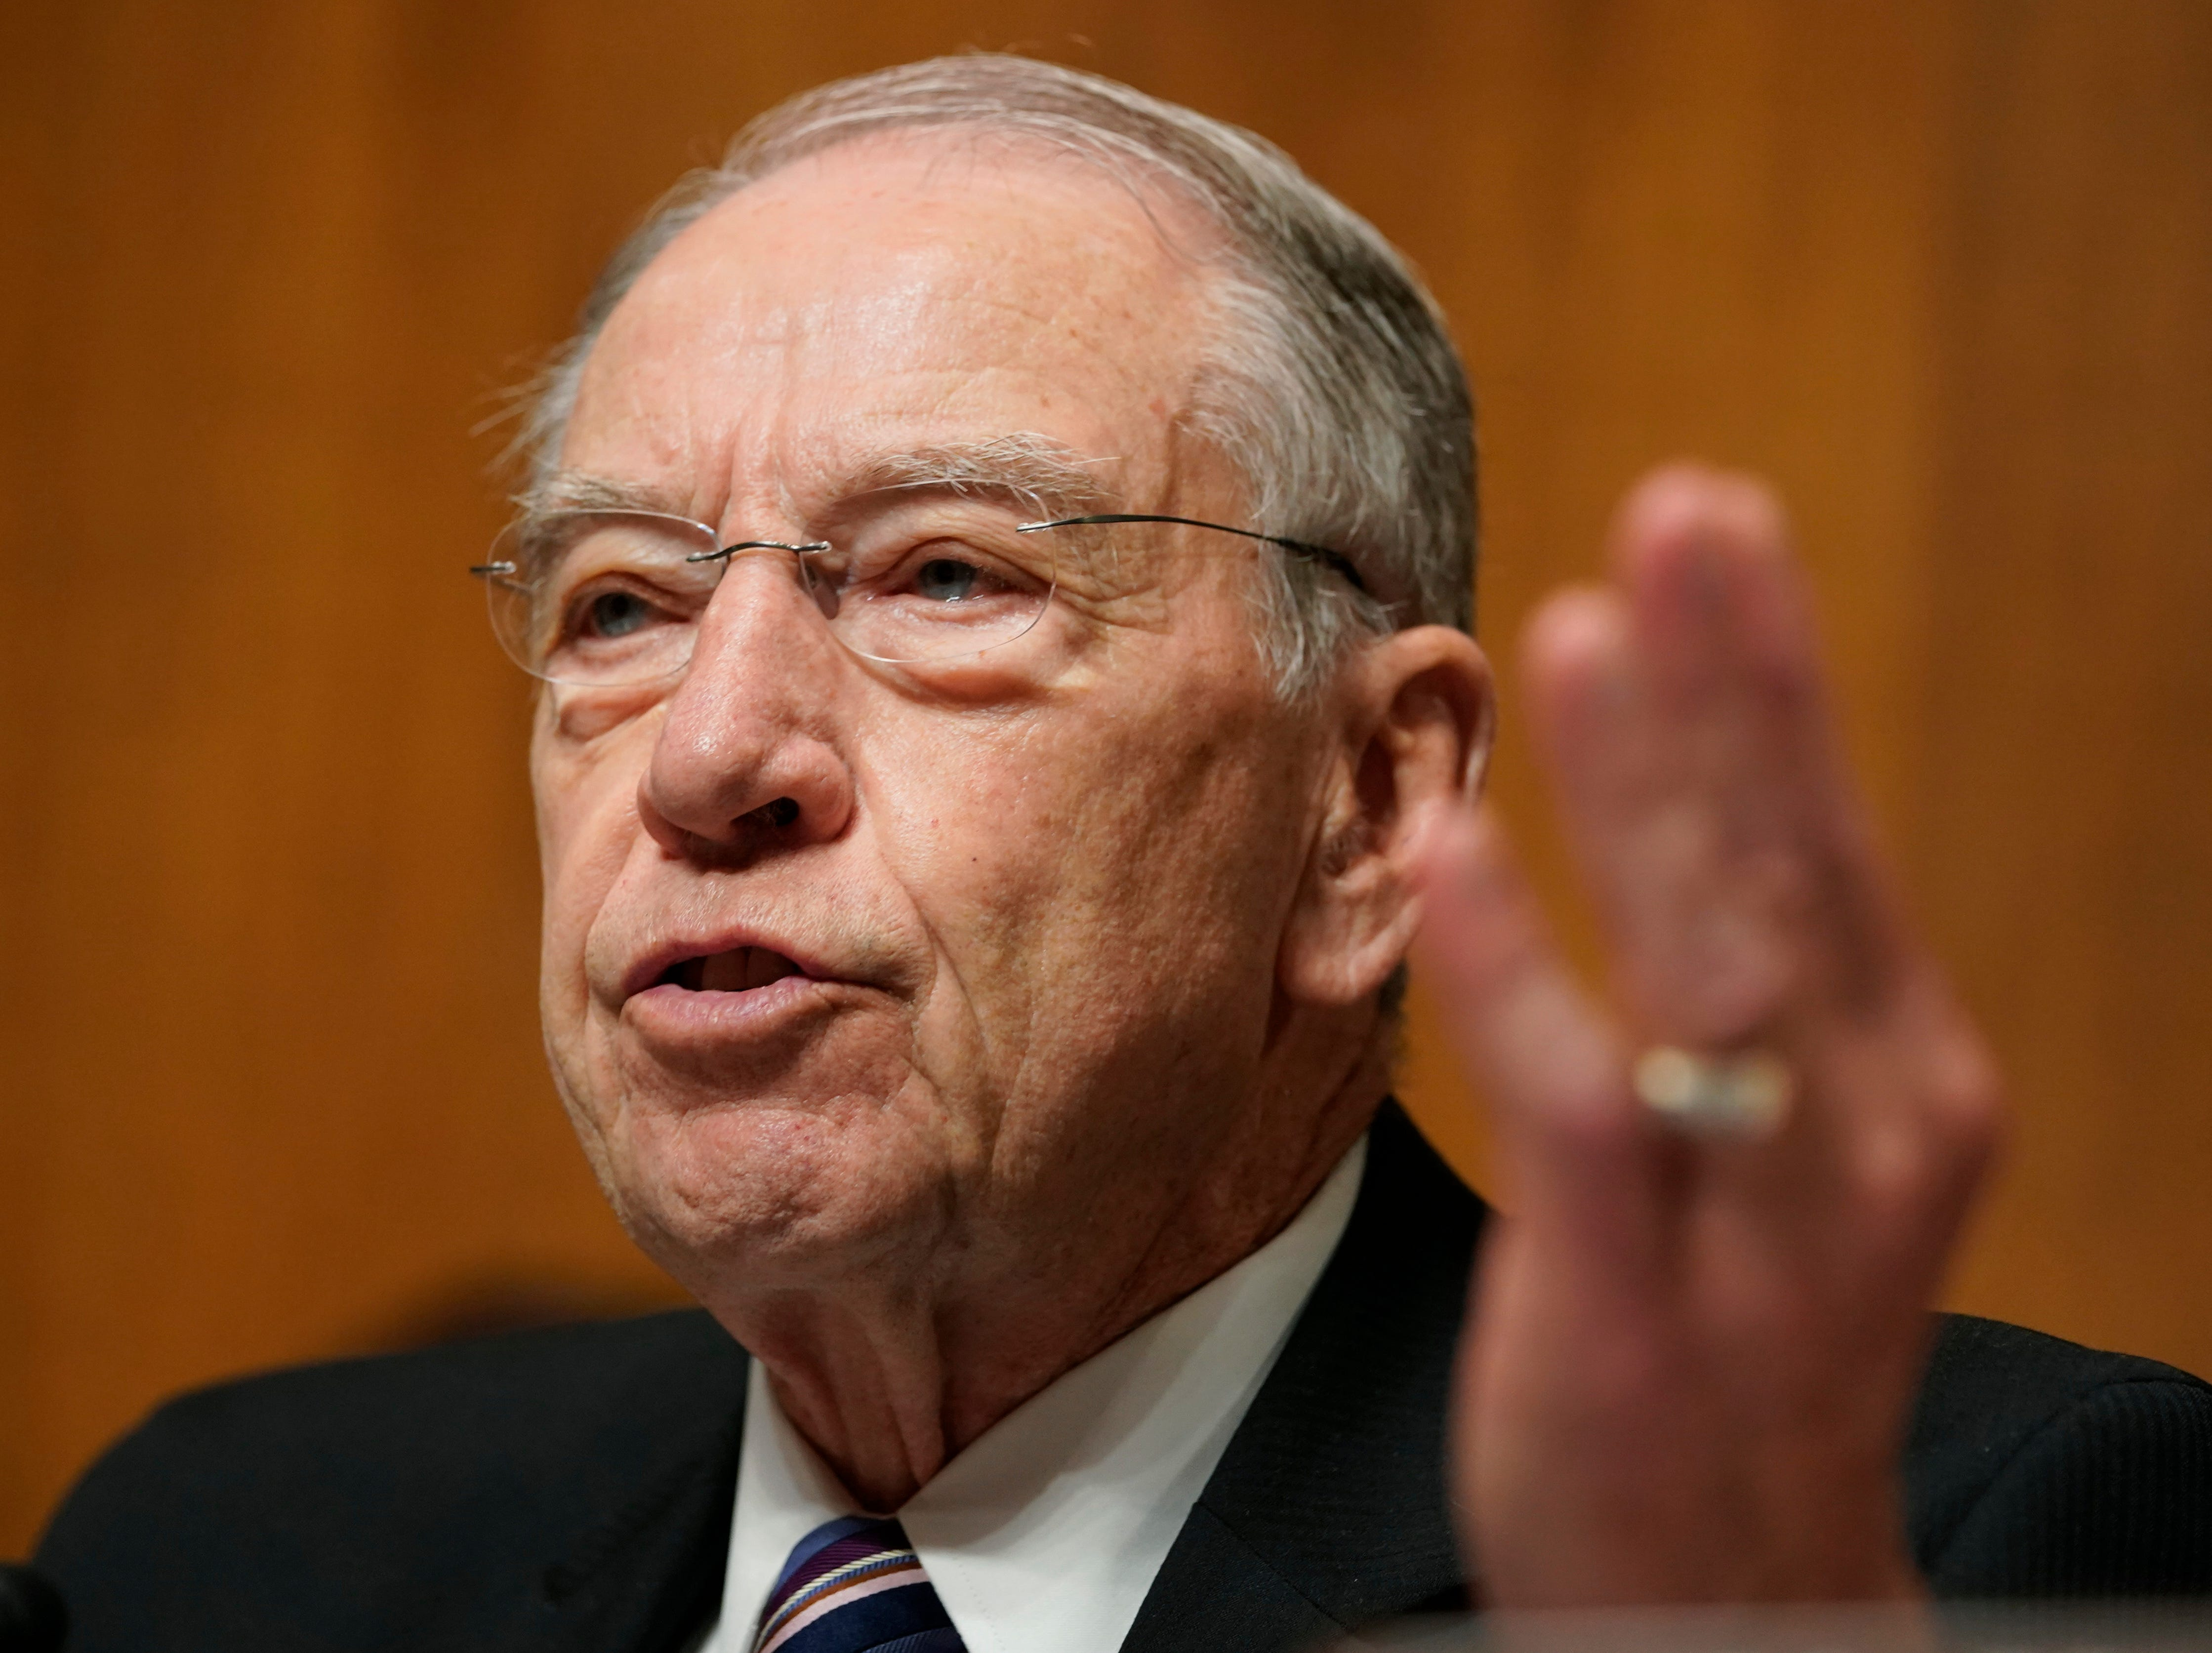 Chuck Grassley: Supreme Court unlikely to overturn Obamacare, so no need to create replacement